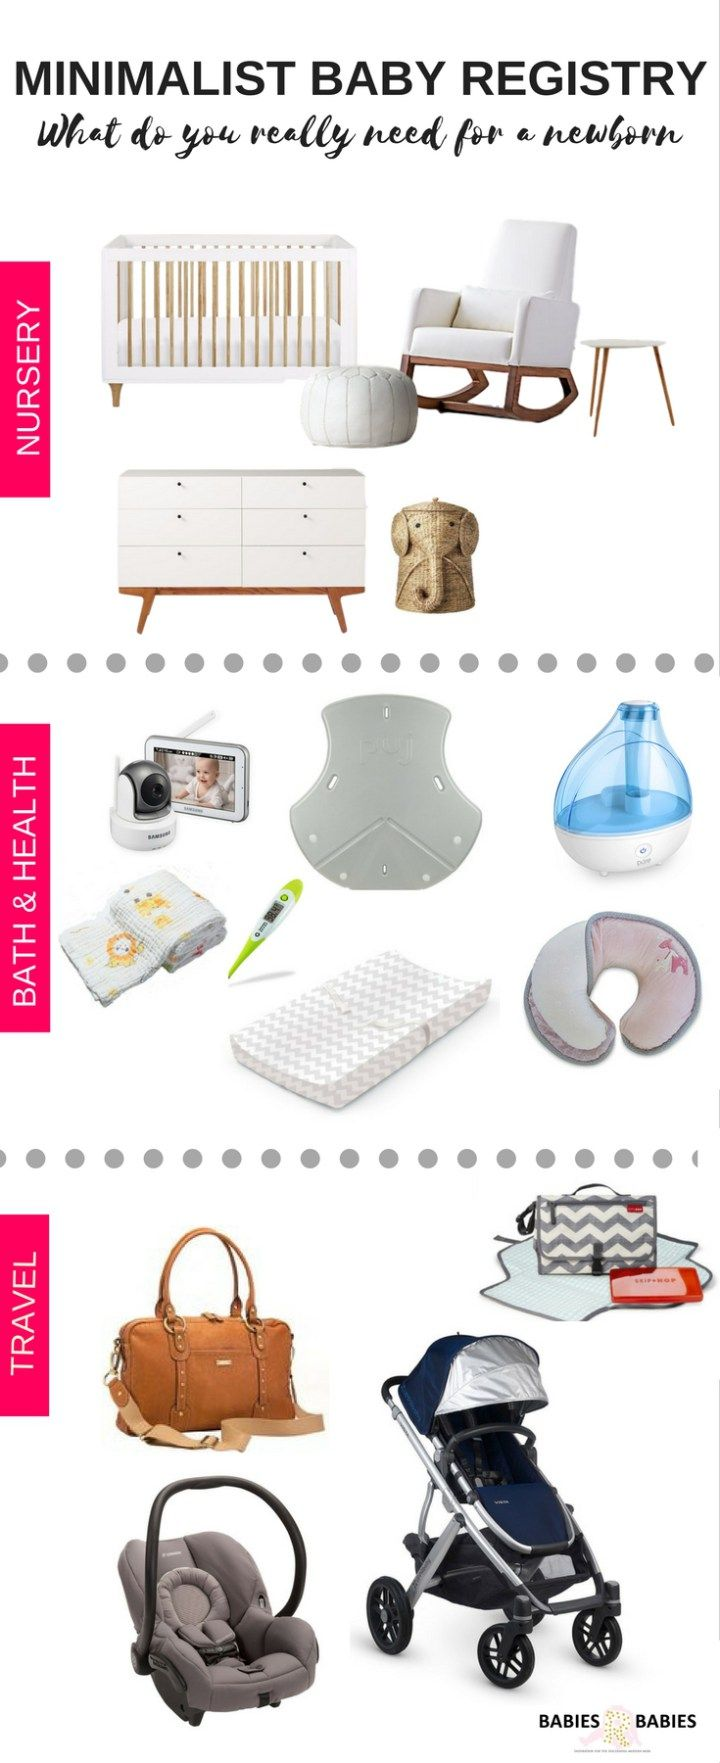 Minimalist Baby Registry.What do you REALLY need for a newborn?This well edited list of must-have is for the perfect list for parents who live a minimalist lifestyle.